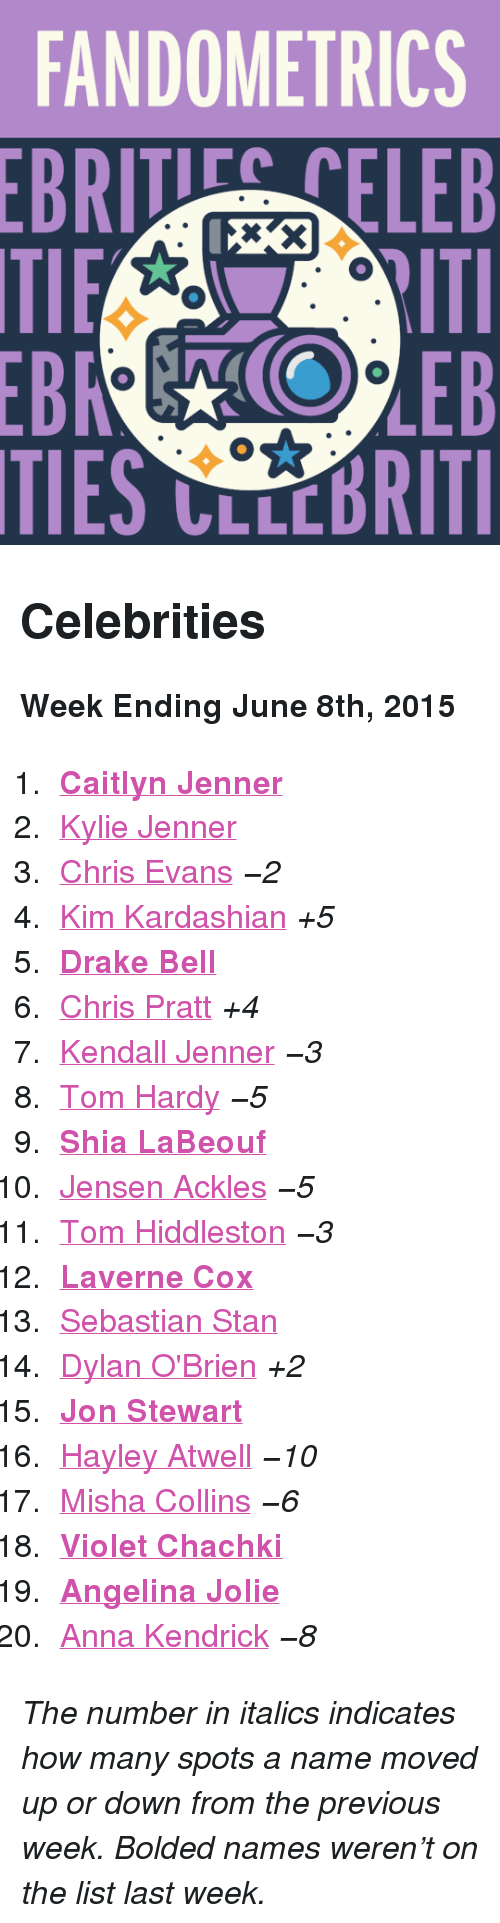 """anna kendrick: FANDOMETRICS  BRTELEB  TIES CLLCBRITI <h2>Celebrities</h2><p><b>Week Ending June 8th, 2015</b></p><ol><li><a href=""""http://www.tumblr.com/search/caitlyn%20jenner""""><b>Caitlyn Jenner</b></a></li>  <li><a href=""""http://www.tumblr.com/search/kylie%20jenner"""">Kylie Jenner</a></li>  <li><a href=""""http://www.tumblr.com/search/chris%20evans"""">Chris Evans</a><i>−2</i></li>  <li><a href=""""http://www.tumblr.com/search/kim%20kardashian"""">Kim Kardashian</a><i>+5</i></li>  <li><a href=""""http://www.tumblr.com/search/drake%20bell""""><b>Drake Bell</b></a></li>  <li><a href=""""http://www.tumblr.com/search/chris%20pratt"""">Chris Pratt</a><i>+4</i></li>  <li><a href=""""http://www.tumblr.com/search/kendall%20jenner"""">Kendall Jenner</a><i>−3</i></li>  <li><a href=""""http://www.tumblr.com/search/tom%20hardy"""">Tom Hardy</a><i>−5</i></li>  <li><a href=""""http://www.tumblr.com/search/shia%20labeouf""""><b>Shia LaBeouf</b></a></li>  <li><a href=""""http://www.tumblr.com/search/jensen%20ackles"""">Jensen Ackles</a><i>−5</i></li>  <li><a href=""""http://www.tumblr.com/search/tom%20hiddleston"""">Tom Hiddleston</a><i>−3</i></li>  <li><a href=""""http://www.tumblr.com/search/laverne%20cox""""><b>Laverne Cox</b></a></li>  <li><a href=""""http://www.tumblr.com/search/sebastian%20stan"""">Sebastian Stan</a></li>  <li><a href=""""http://www.tumblr.com/search/dylan%20o'brien"""">Dylan O'Brien</a><i>+2</i></li>  <li><a href=""""http://www.tumblr.com/search/jon%20stewart""""><b>Jon Stewart</b></a></li>  <li><a href=""""http://www.tumblr.com/search/hayley%20atwell"""">Hayley Atwell</a><i>−10</i></li>  <li><a href=""""http://www.tumblr.com/search/misha%20collins"""">Misha Collins</a><i>−6</i></li>  <li><a href=""""http://www.tumblr.com/search/violet%20chachki""""><b>Violet Chachki</b></a></li>  <li><a href=""""http://www.tumblr.com/search/angelina%20jolie""""><b>Angelina Jolie</b></a></li>  <li><a href=""""http://www.tumblr.com/search/anna%20kendrick"""">Anna Kendrick</a><i>−8</i></li></ol><p><i>The number in italics indicates how many spots a name moved up or down from the previ"""